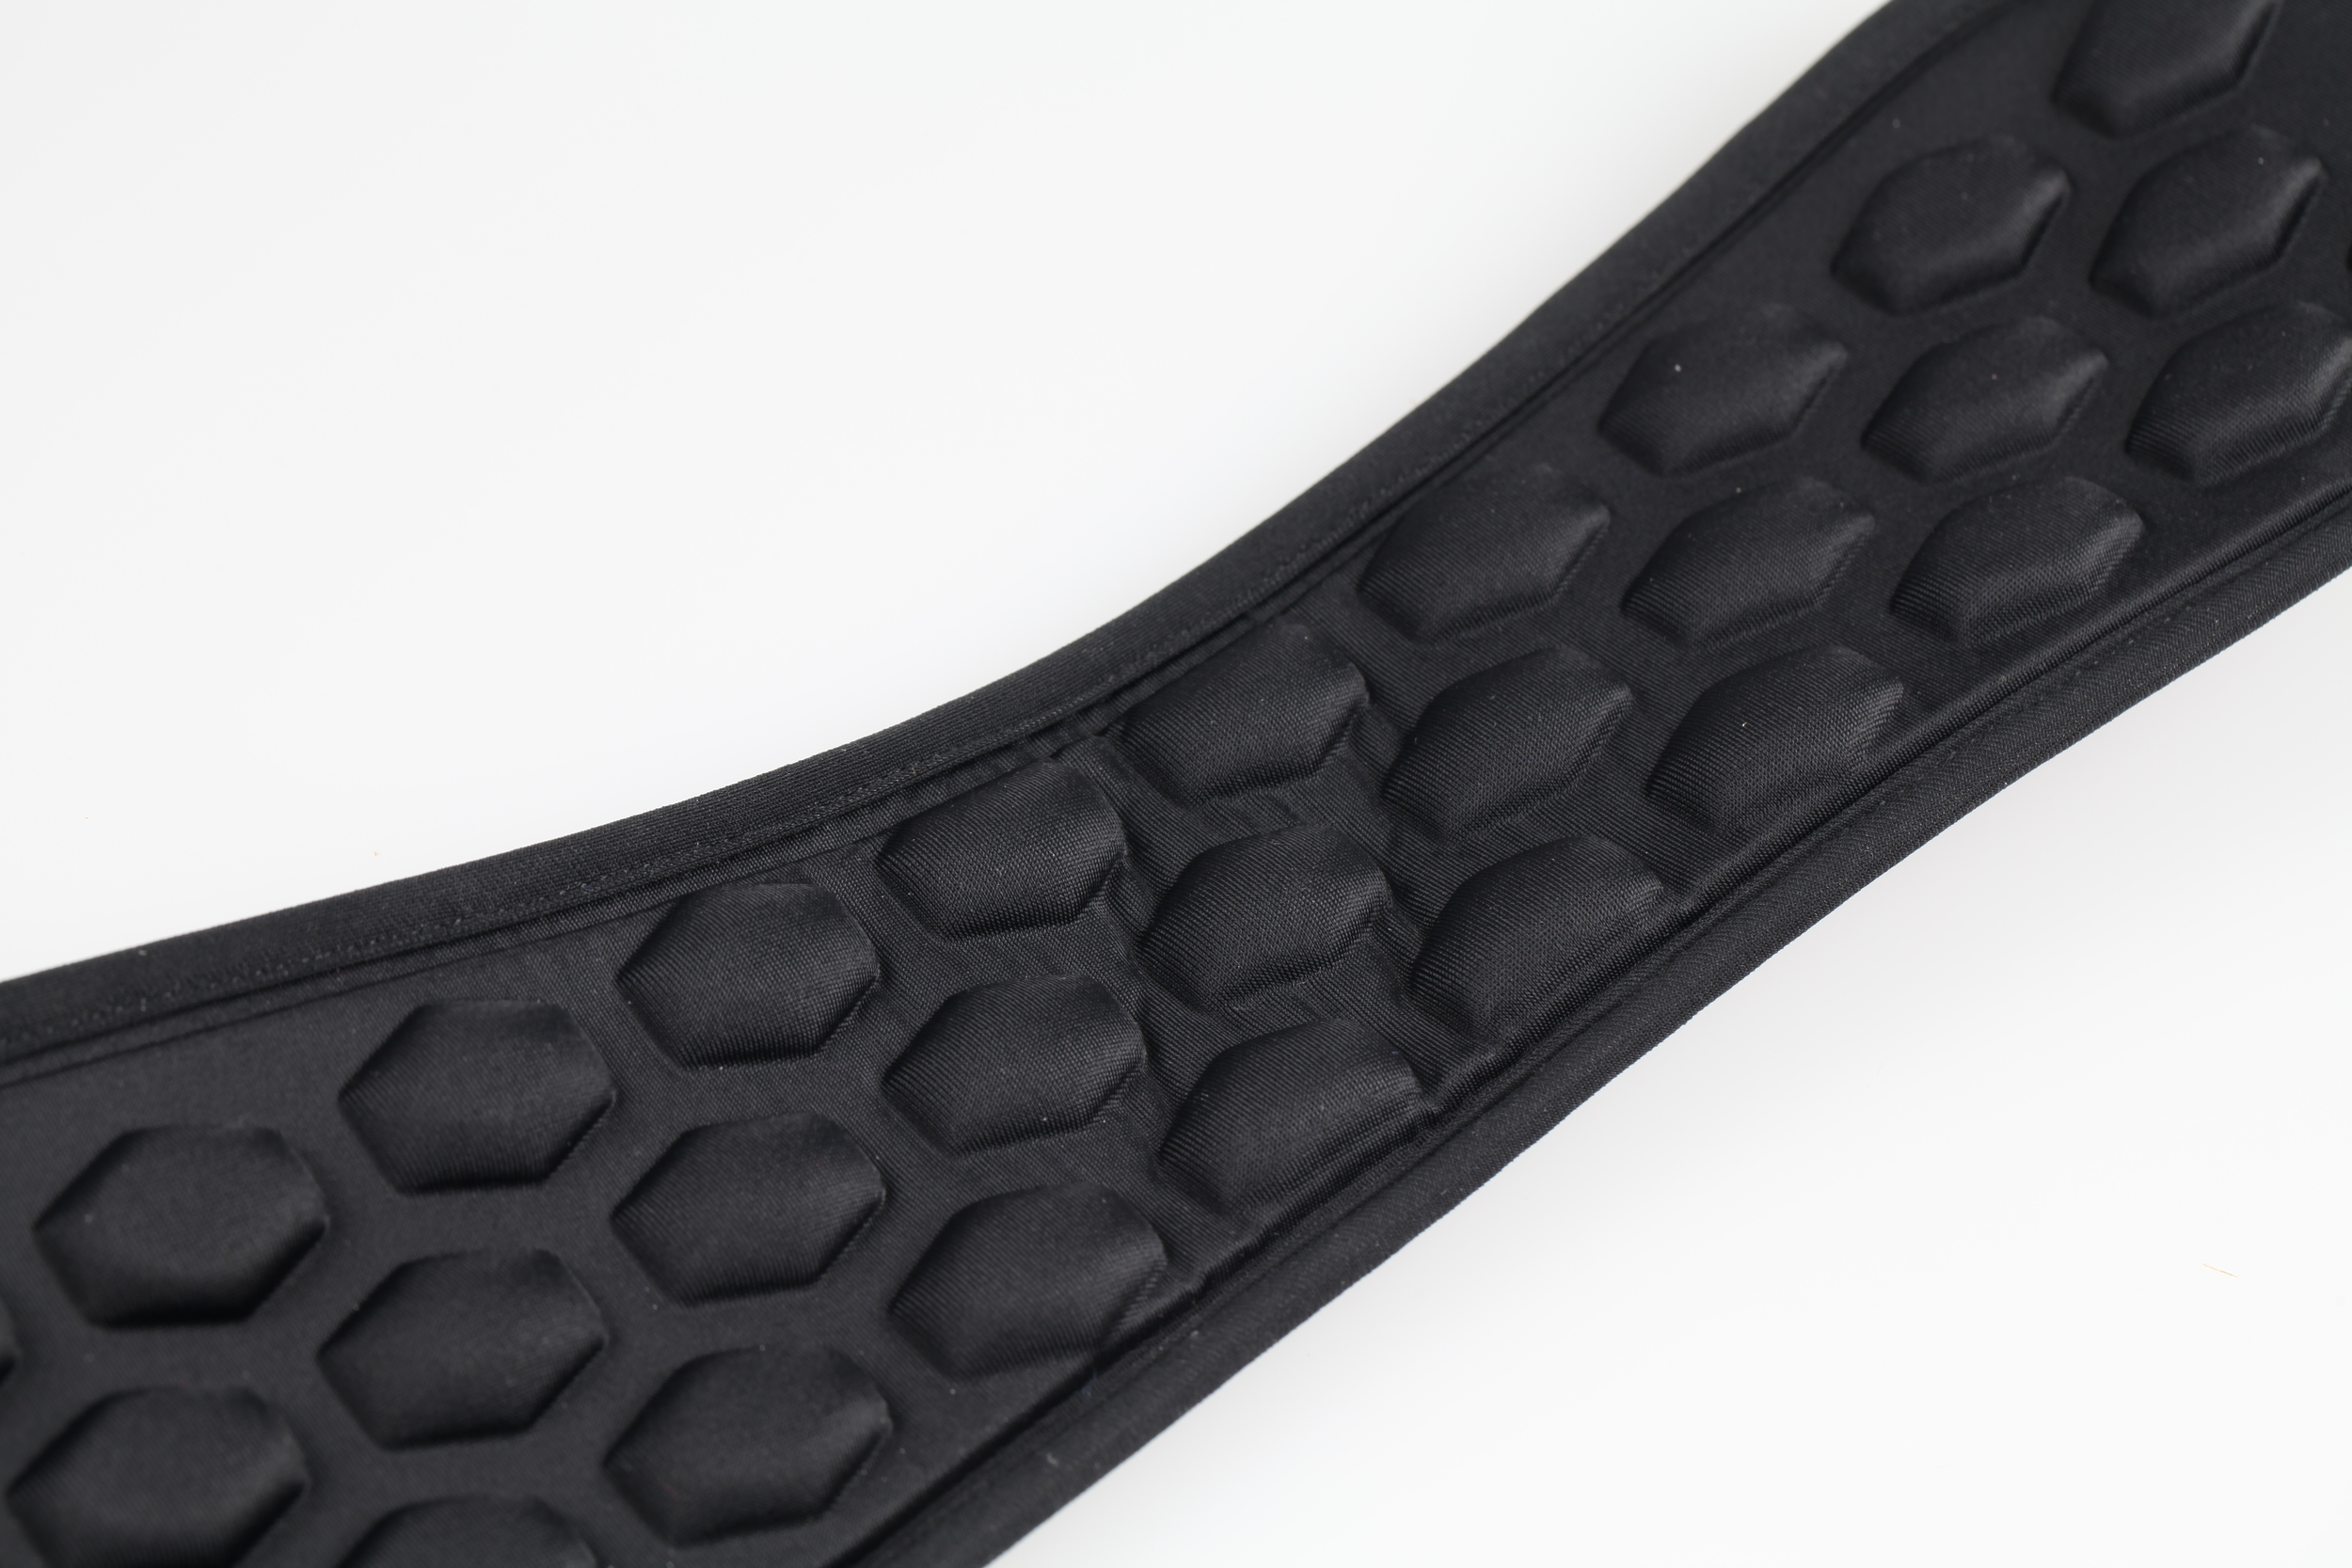 FS-PRO MK III New Shoulderpad Close up.JPG